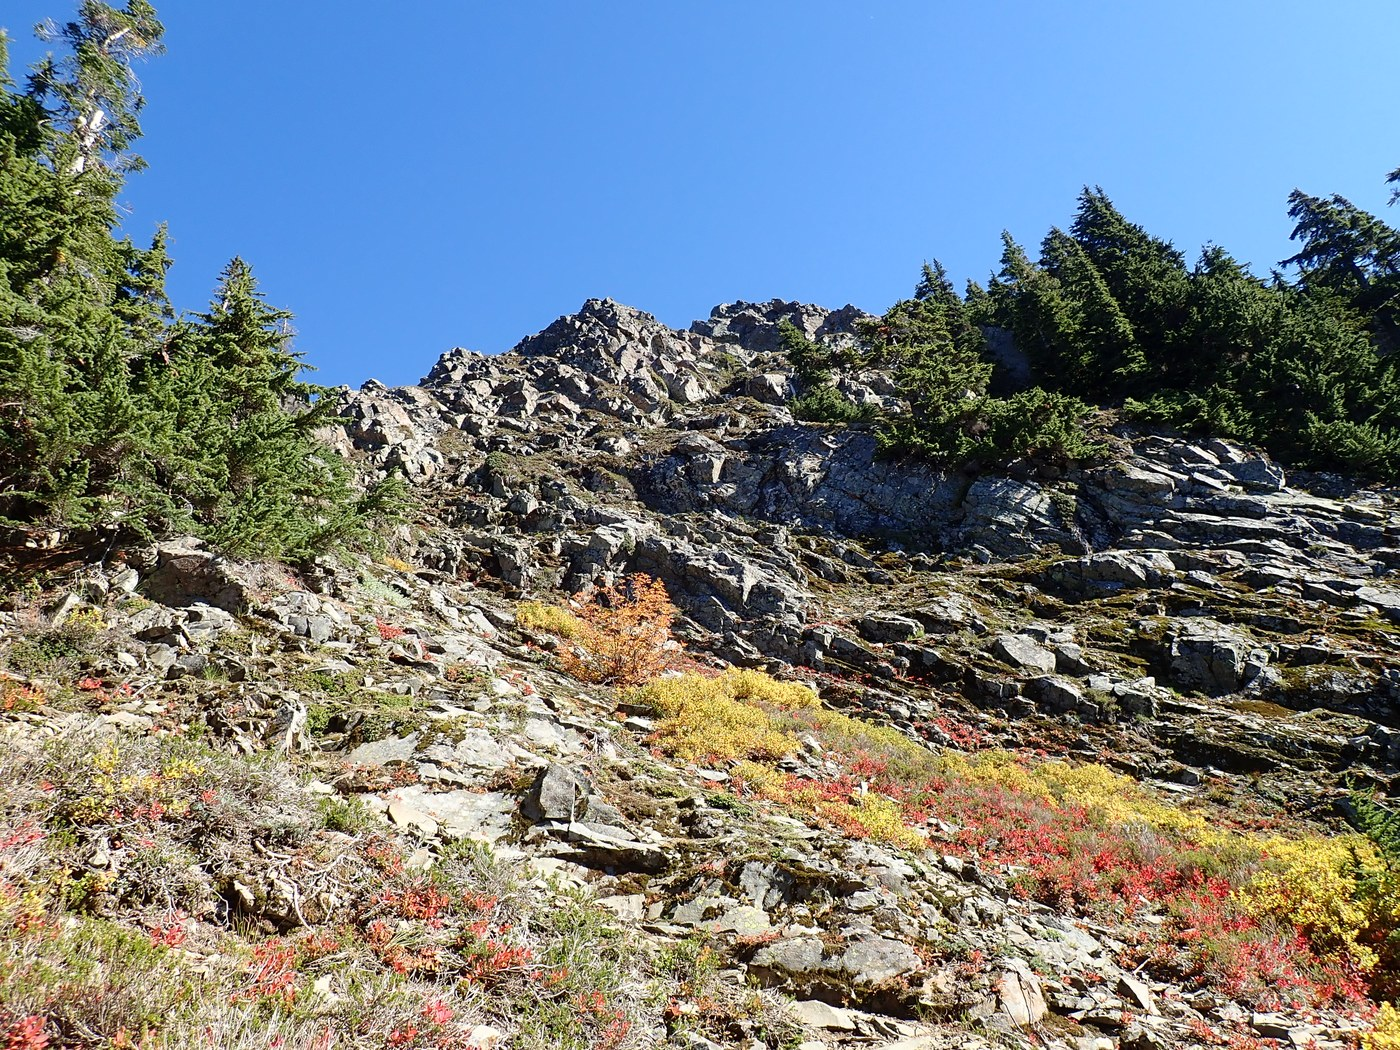 Colorful hillside along the trail. Photo by Suhleenah.